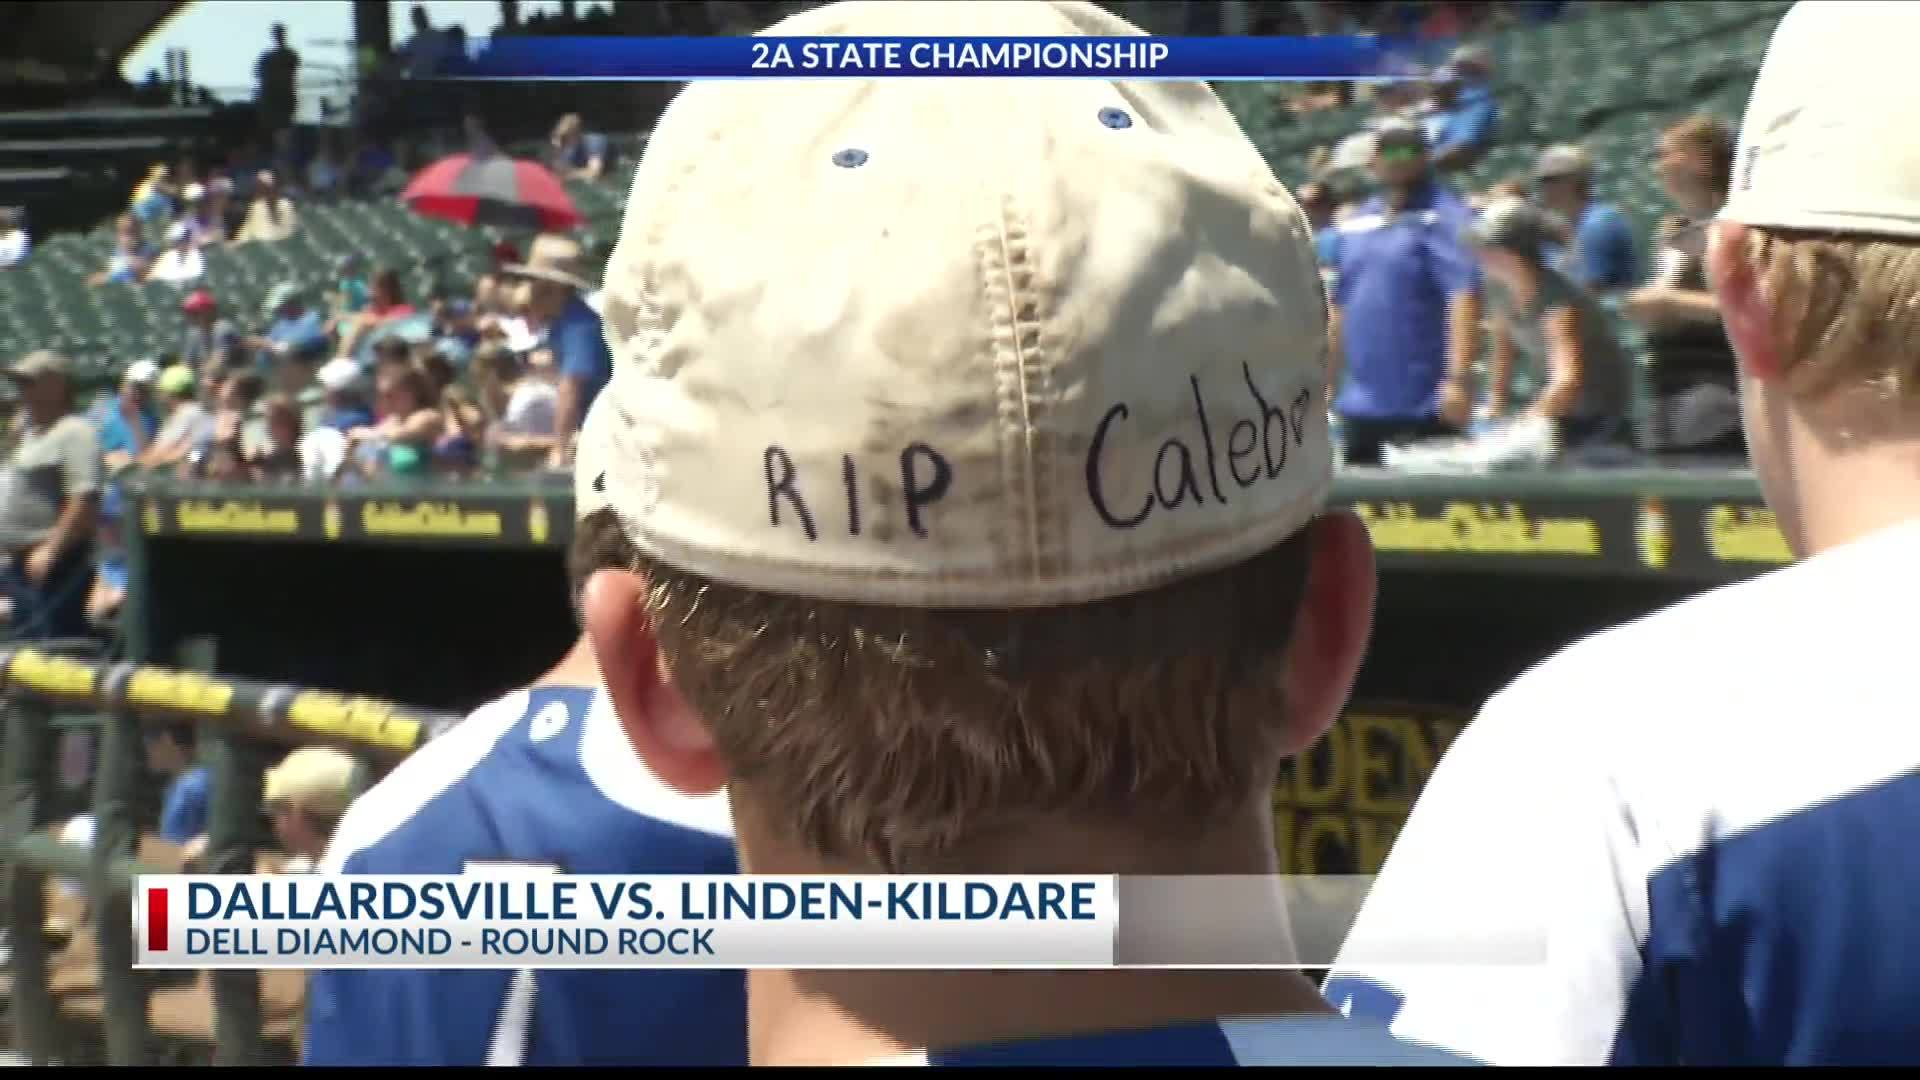 Linden_Kildare_loses_to_Dallardsville_in_7_20190606233919